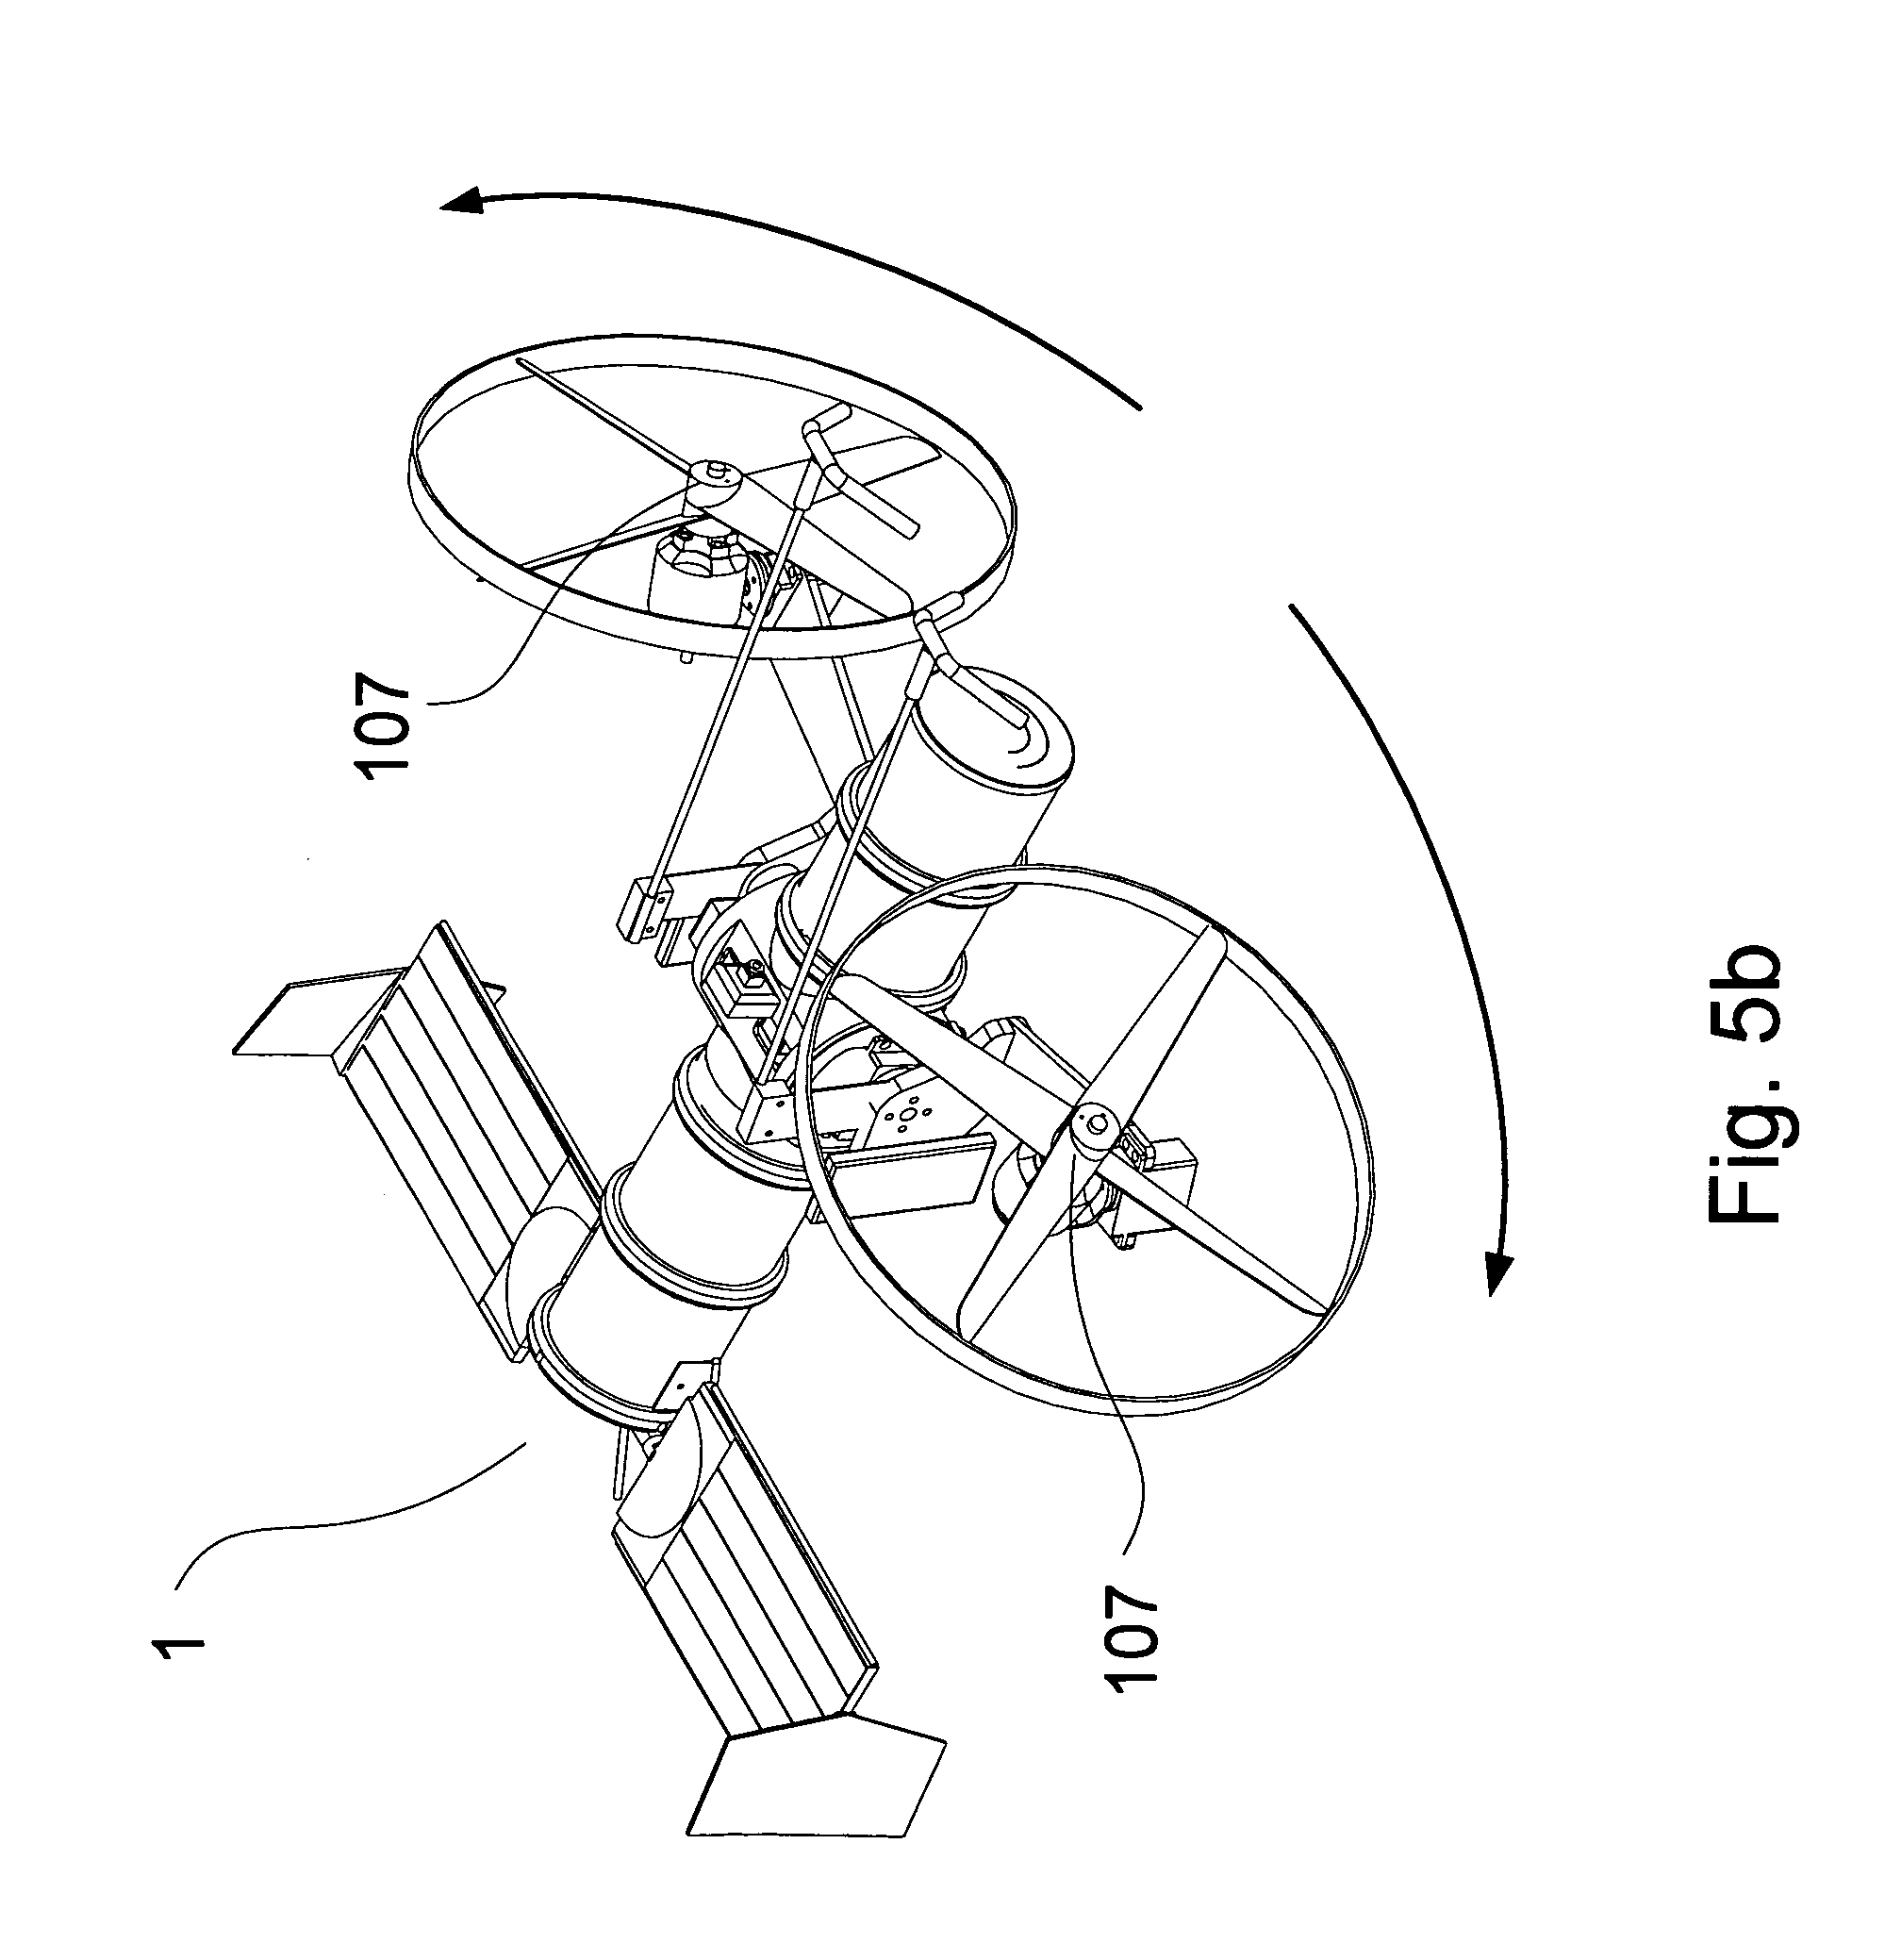 Patent Us8167234 Insect Like Micro Air Vehicle Having